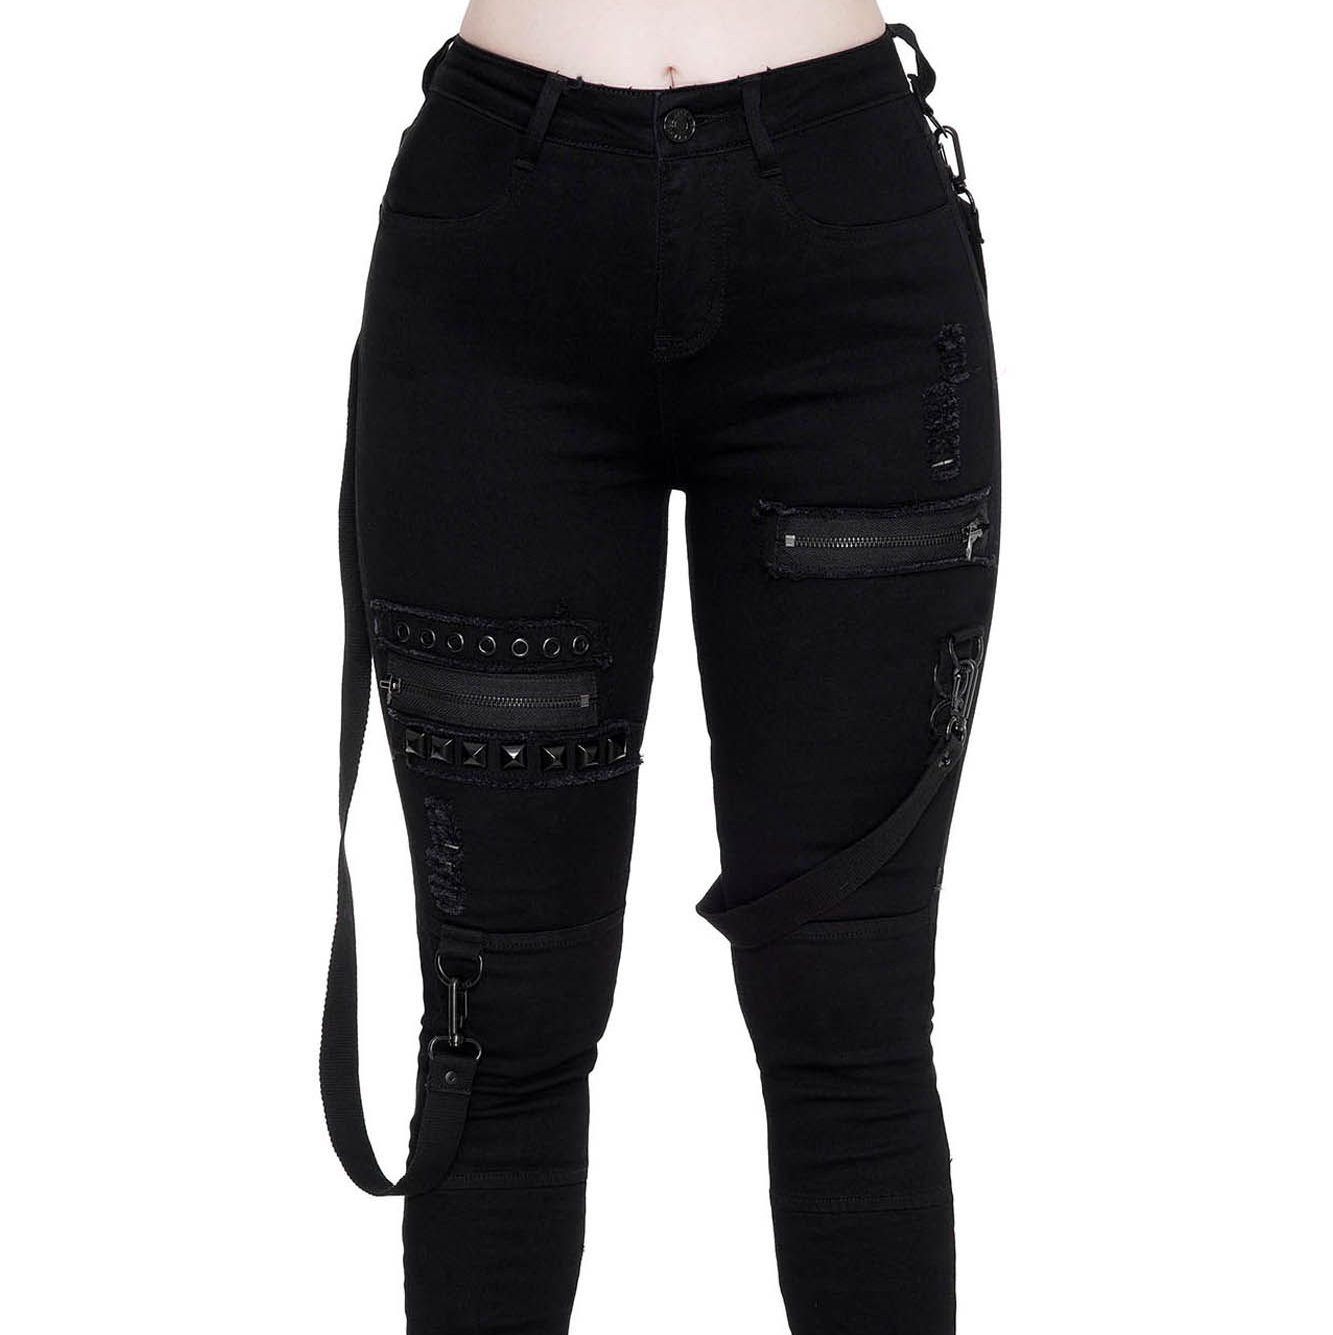 spikedjeans_1